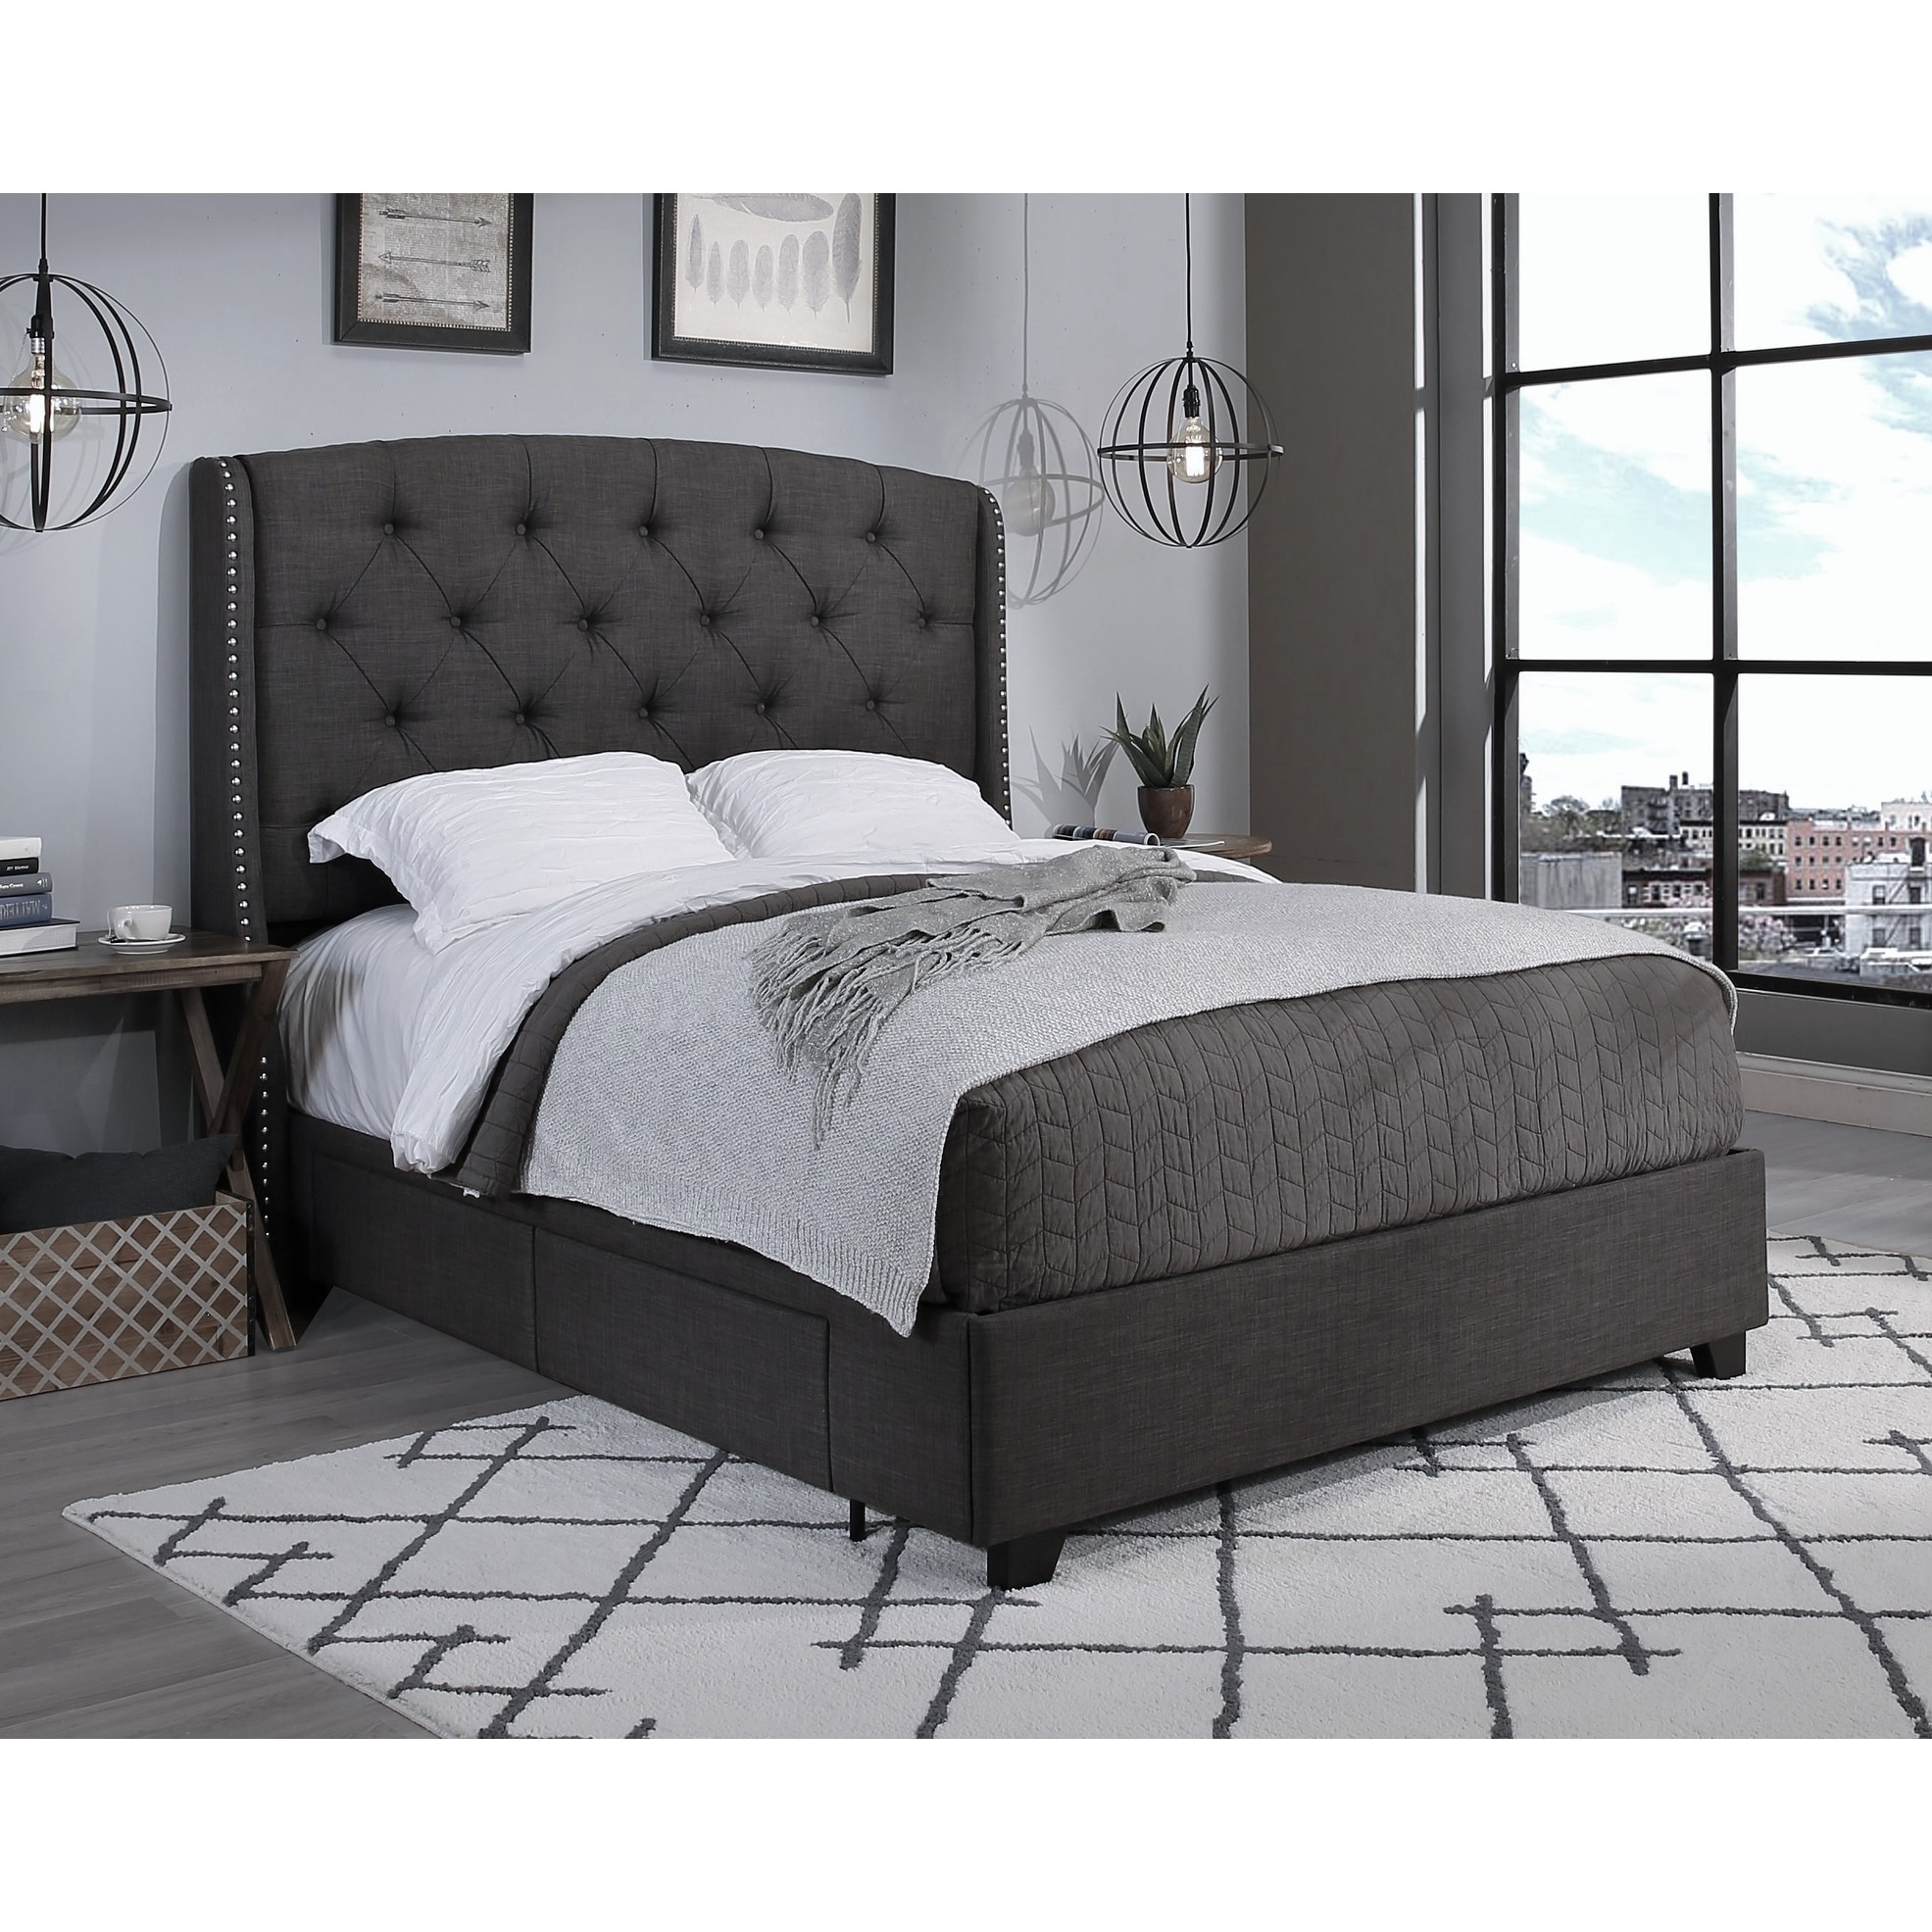 Storage Underneath Gas Lift Base Double Ottoman Bed Double 4ft 6 inch Grey Upholstered Fabric Frame with Headboard /& Footboard Complete Set Assembly Video Included